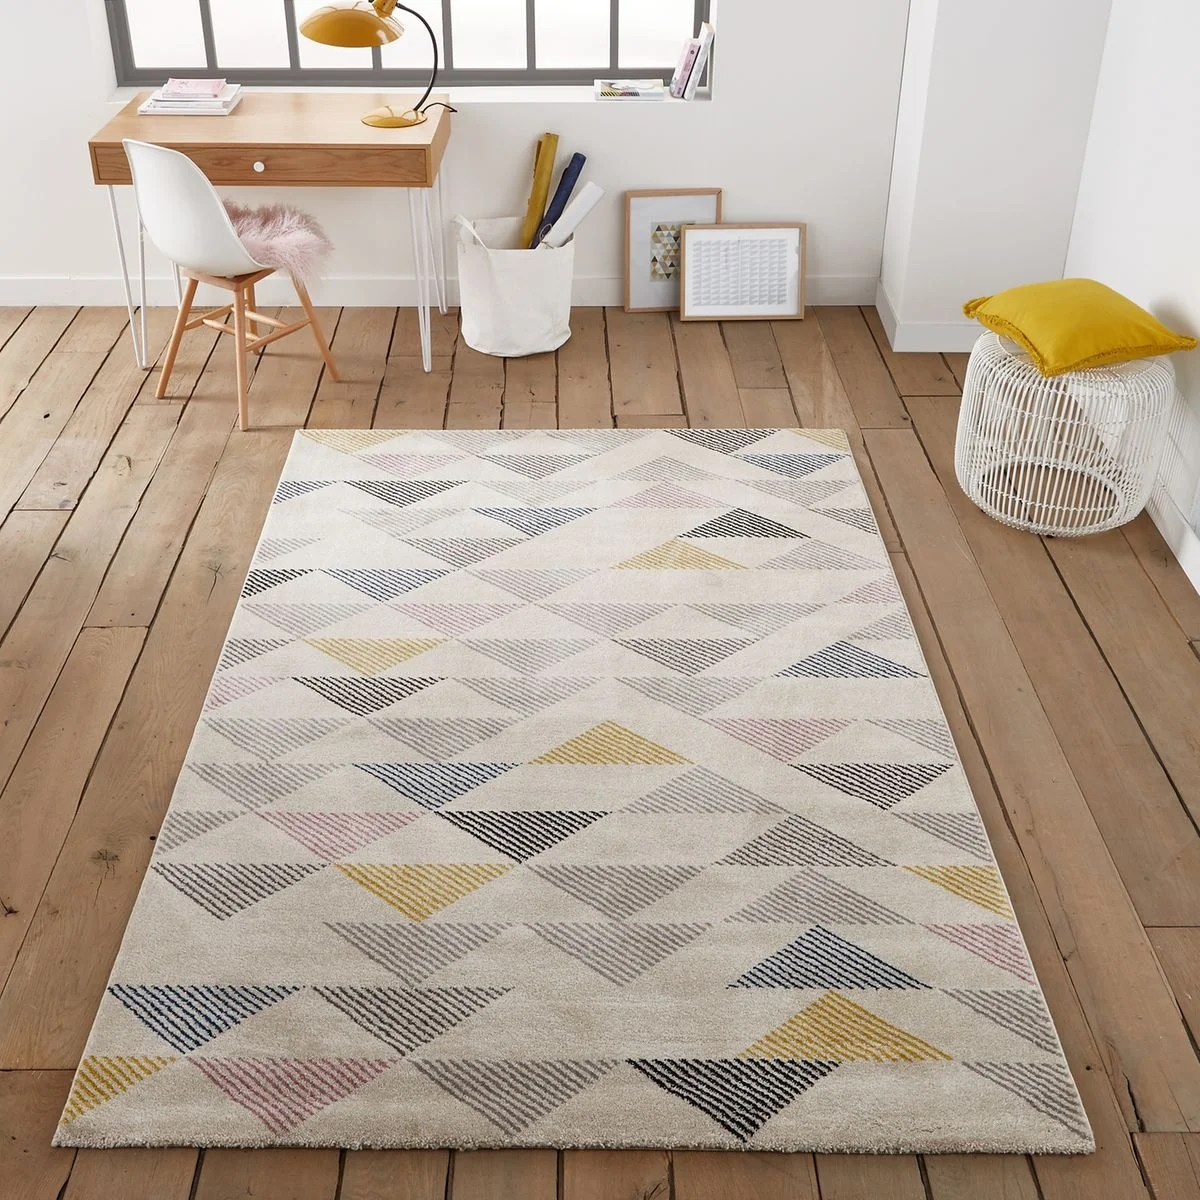 Meuble Informatique But Tapis Triangles, Jursic Multicolore La Redoute Interieurs